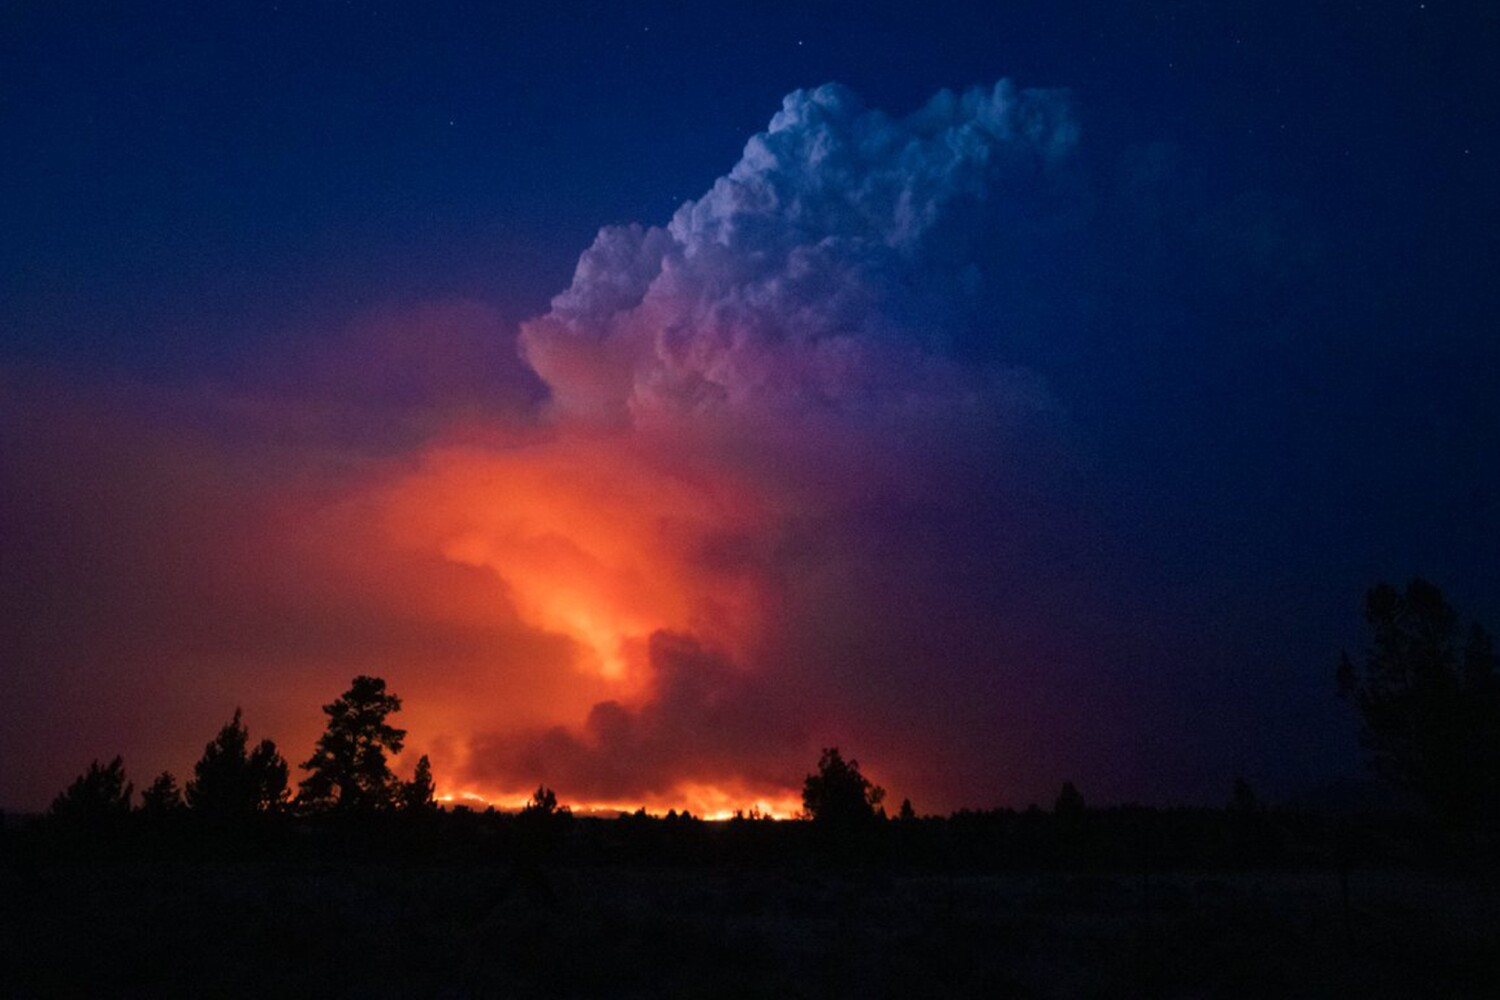 The largest wildfire in the U.S. advances toward Oregon mountain towns